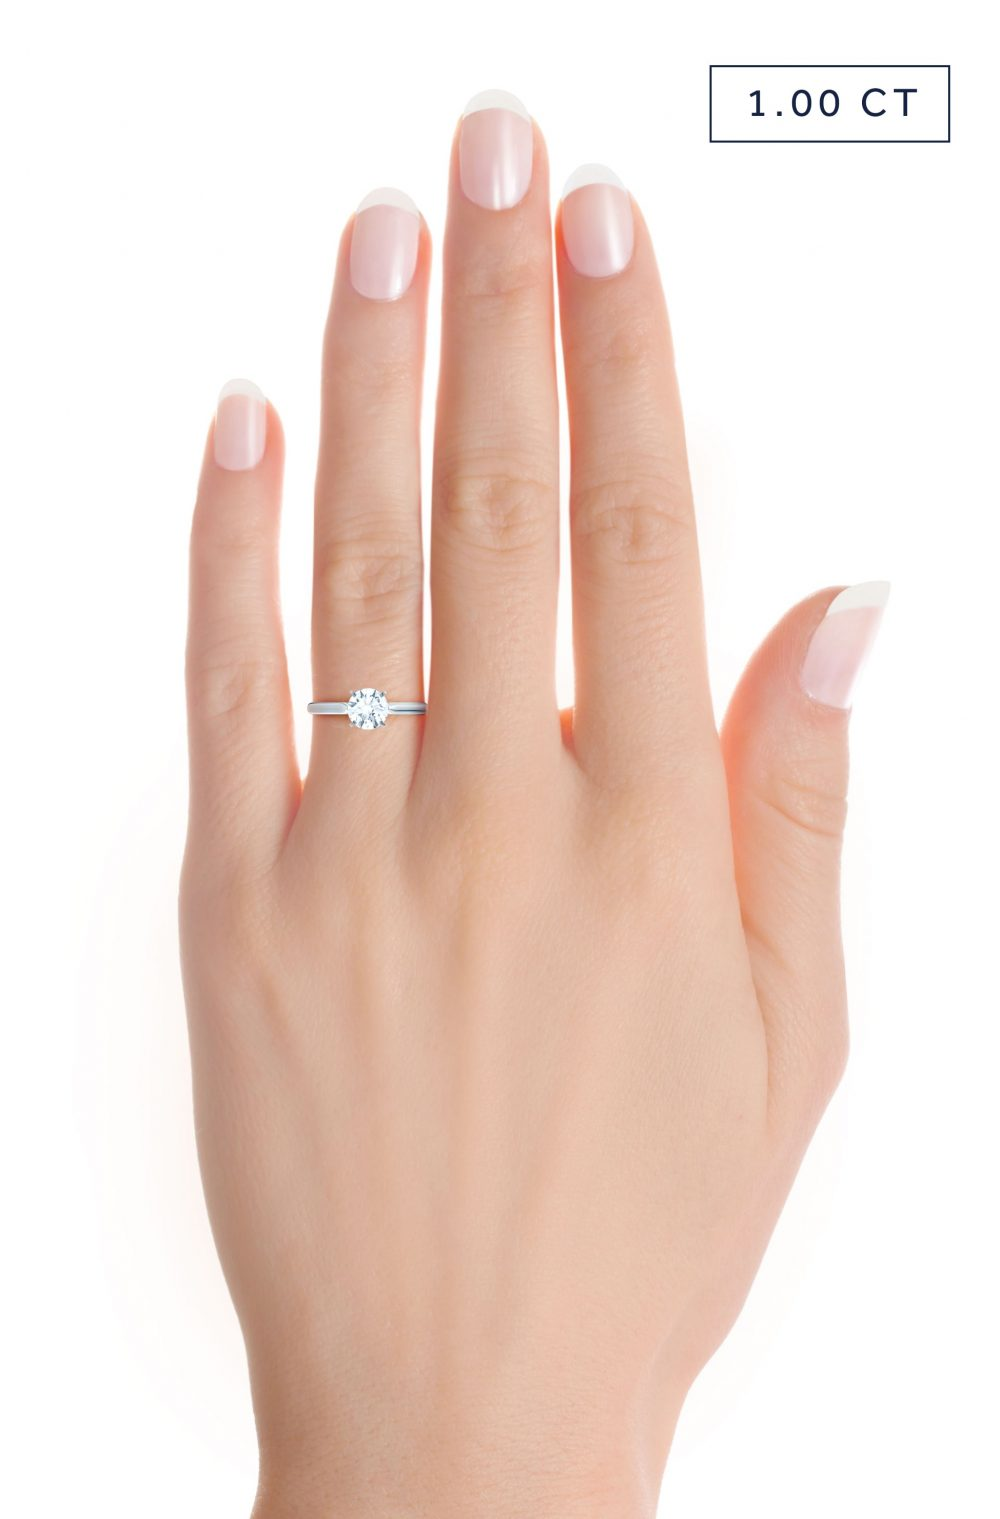 1-carat-diamond-on-hand-1-1